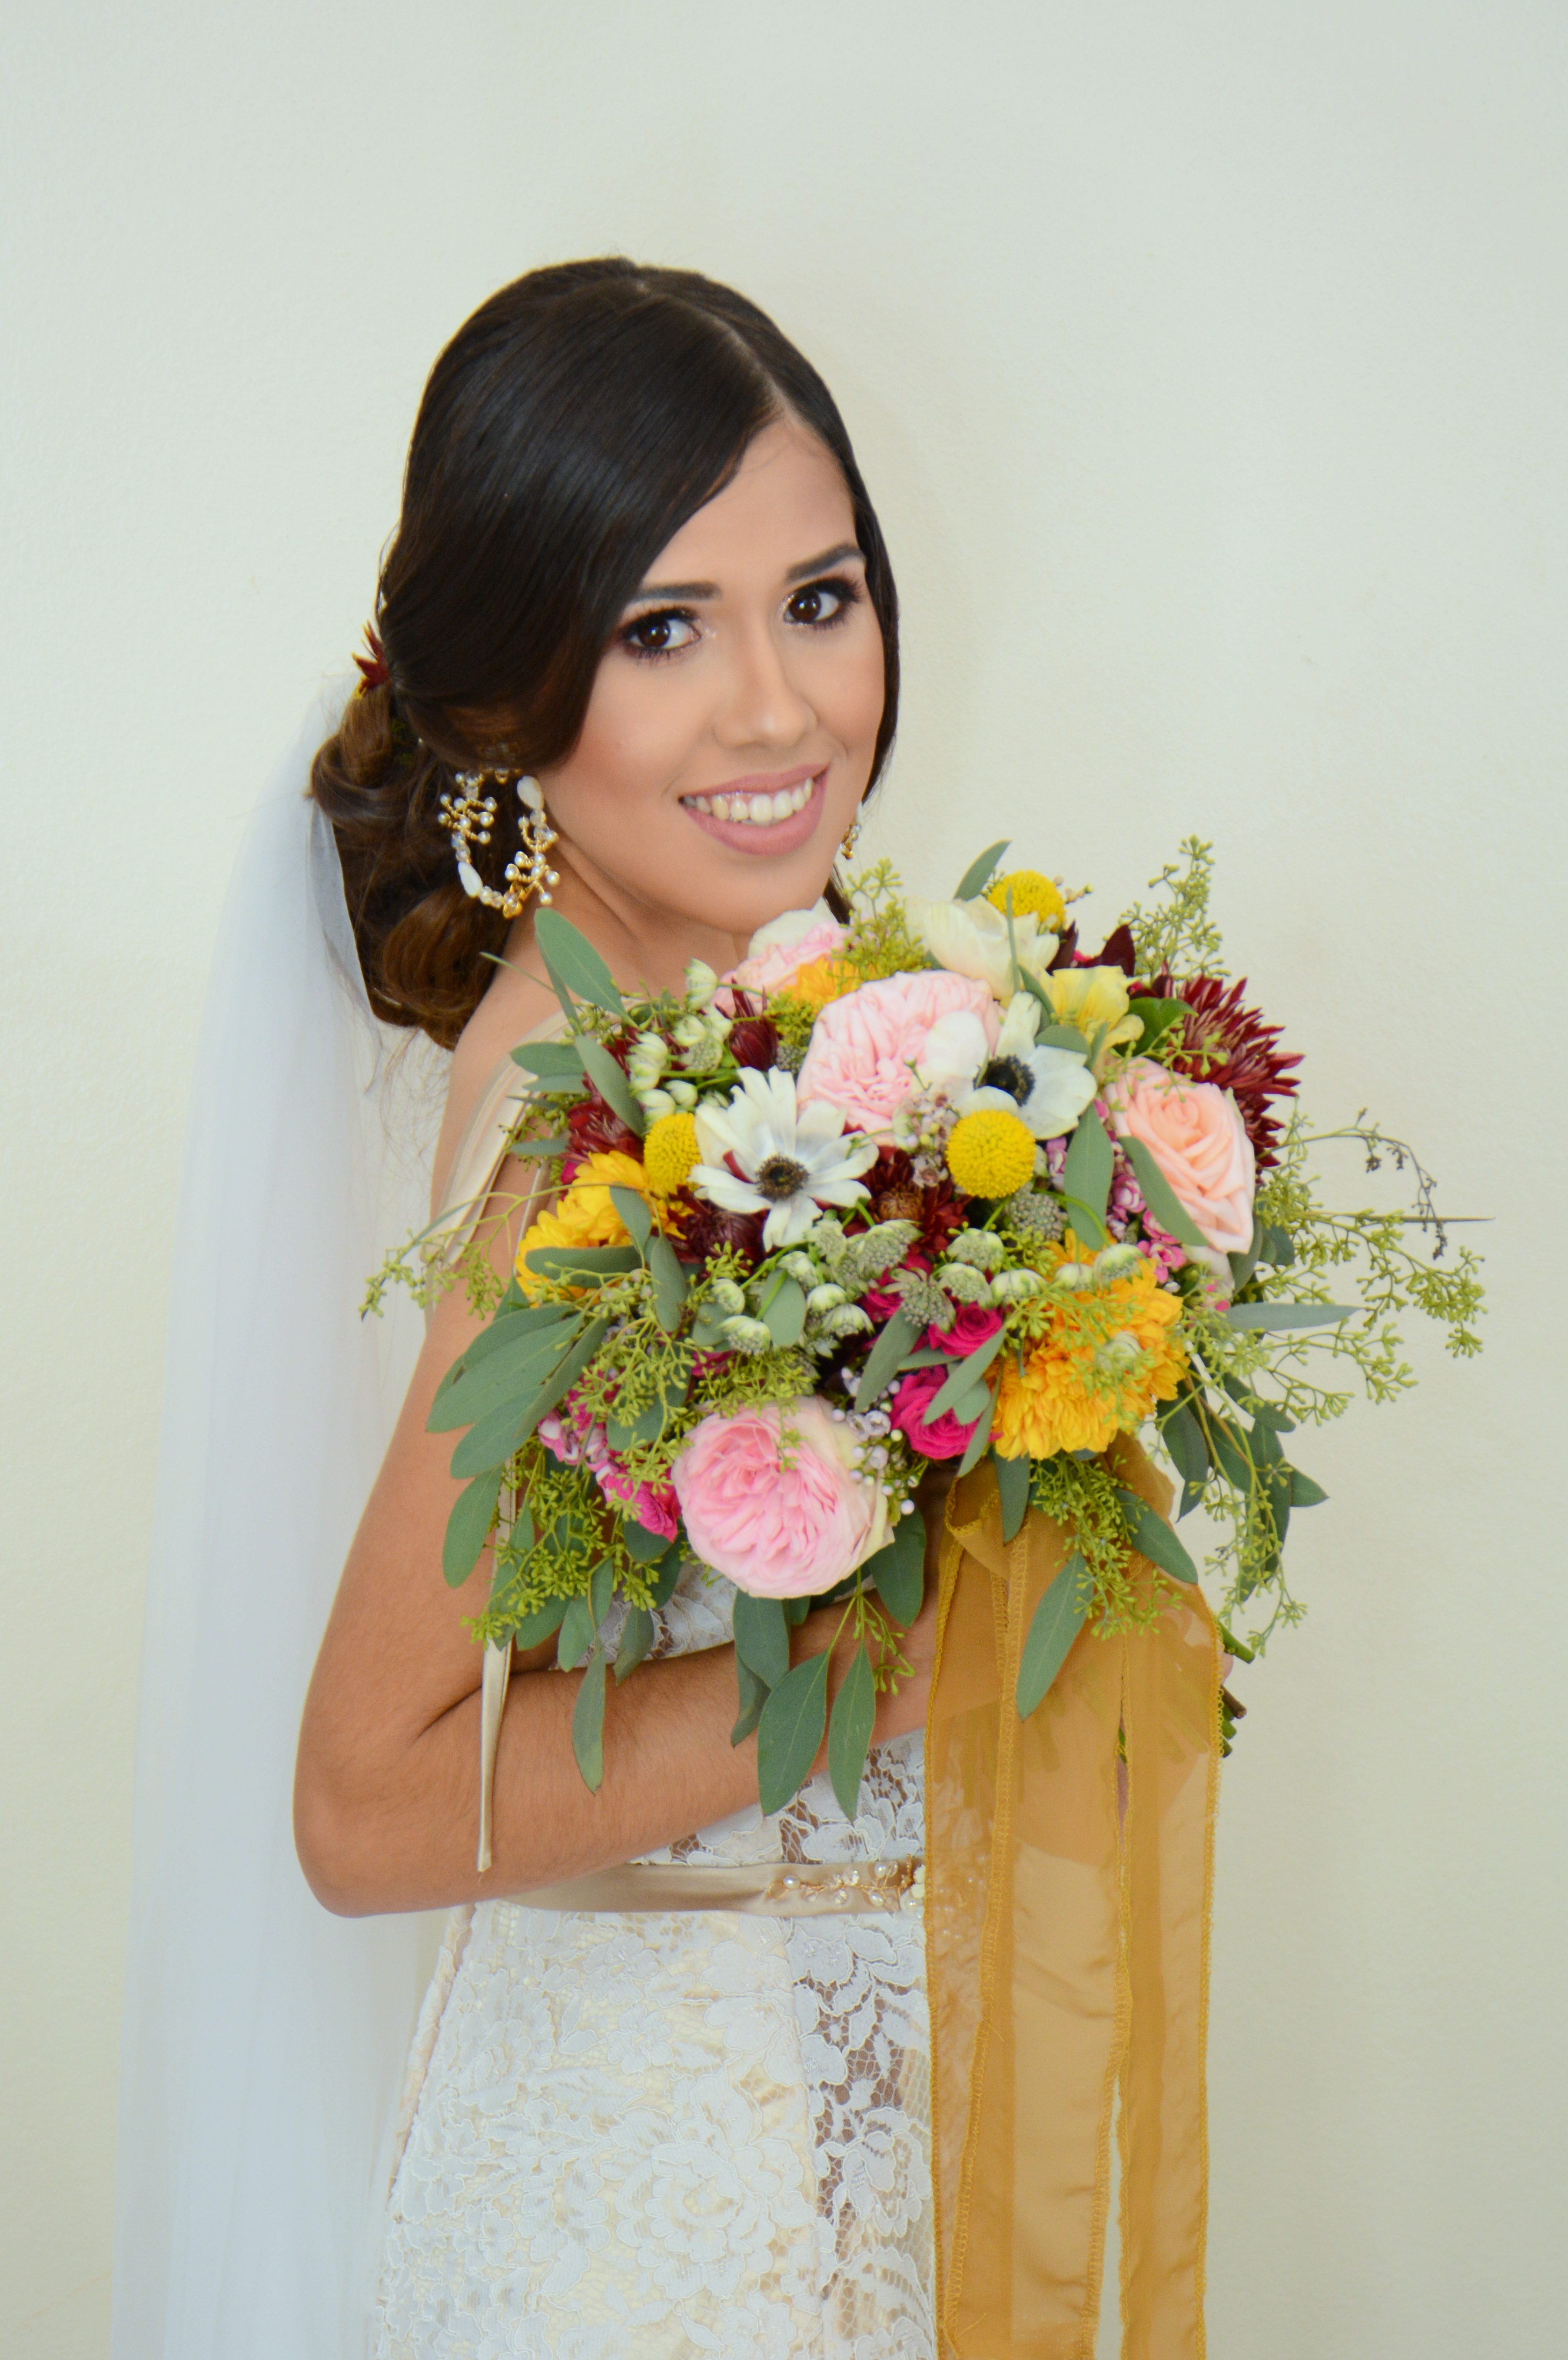 Garden style bouquet in fall colors